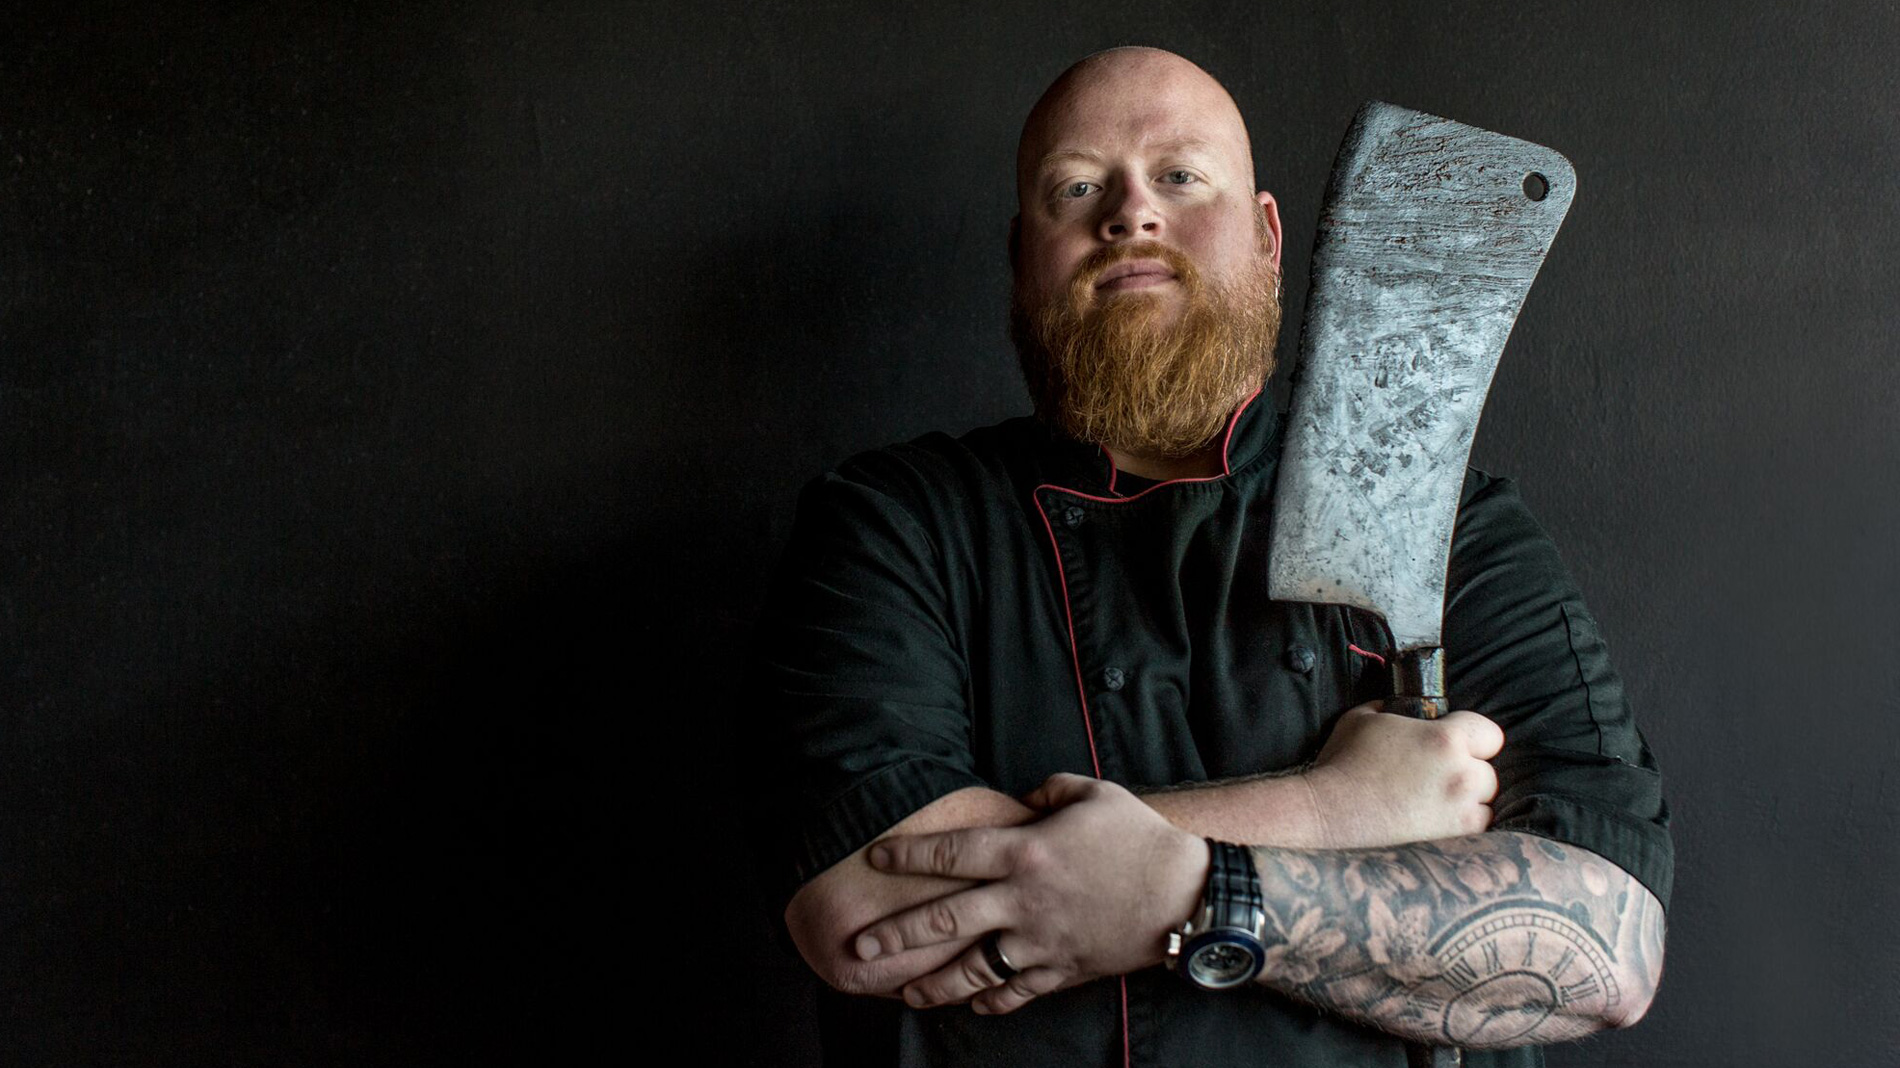 beast craft bbq chef-owner david sandusky with a meat cleaver